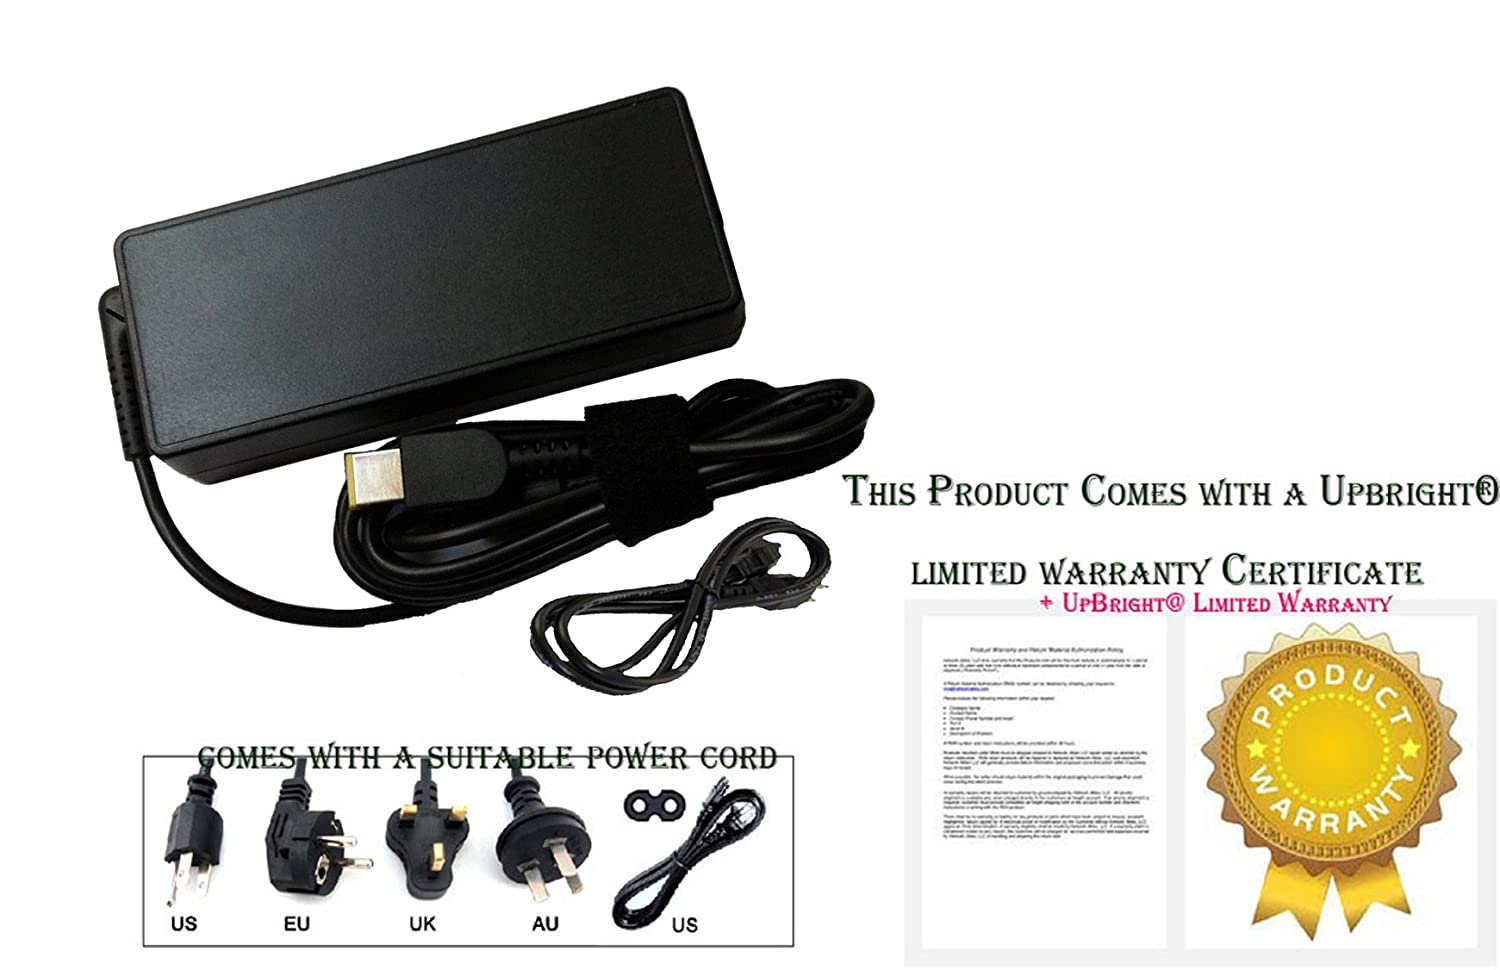 Laptop Ac Adapter Charger Power Cord Supply For Lenovo Wiring Uk Plug To Australian Flex 3 1120 1130 1435 1470 1535 1570 Electronics